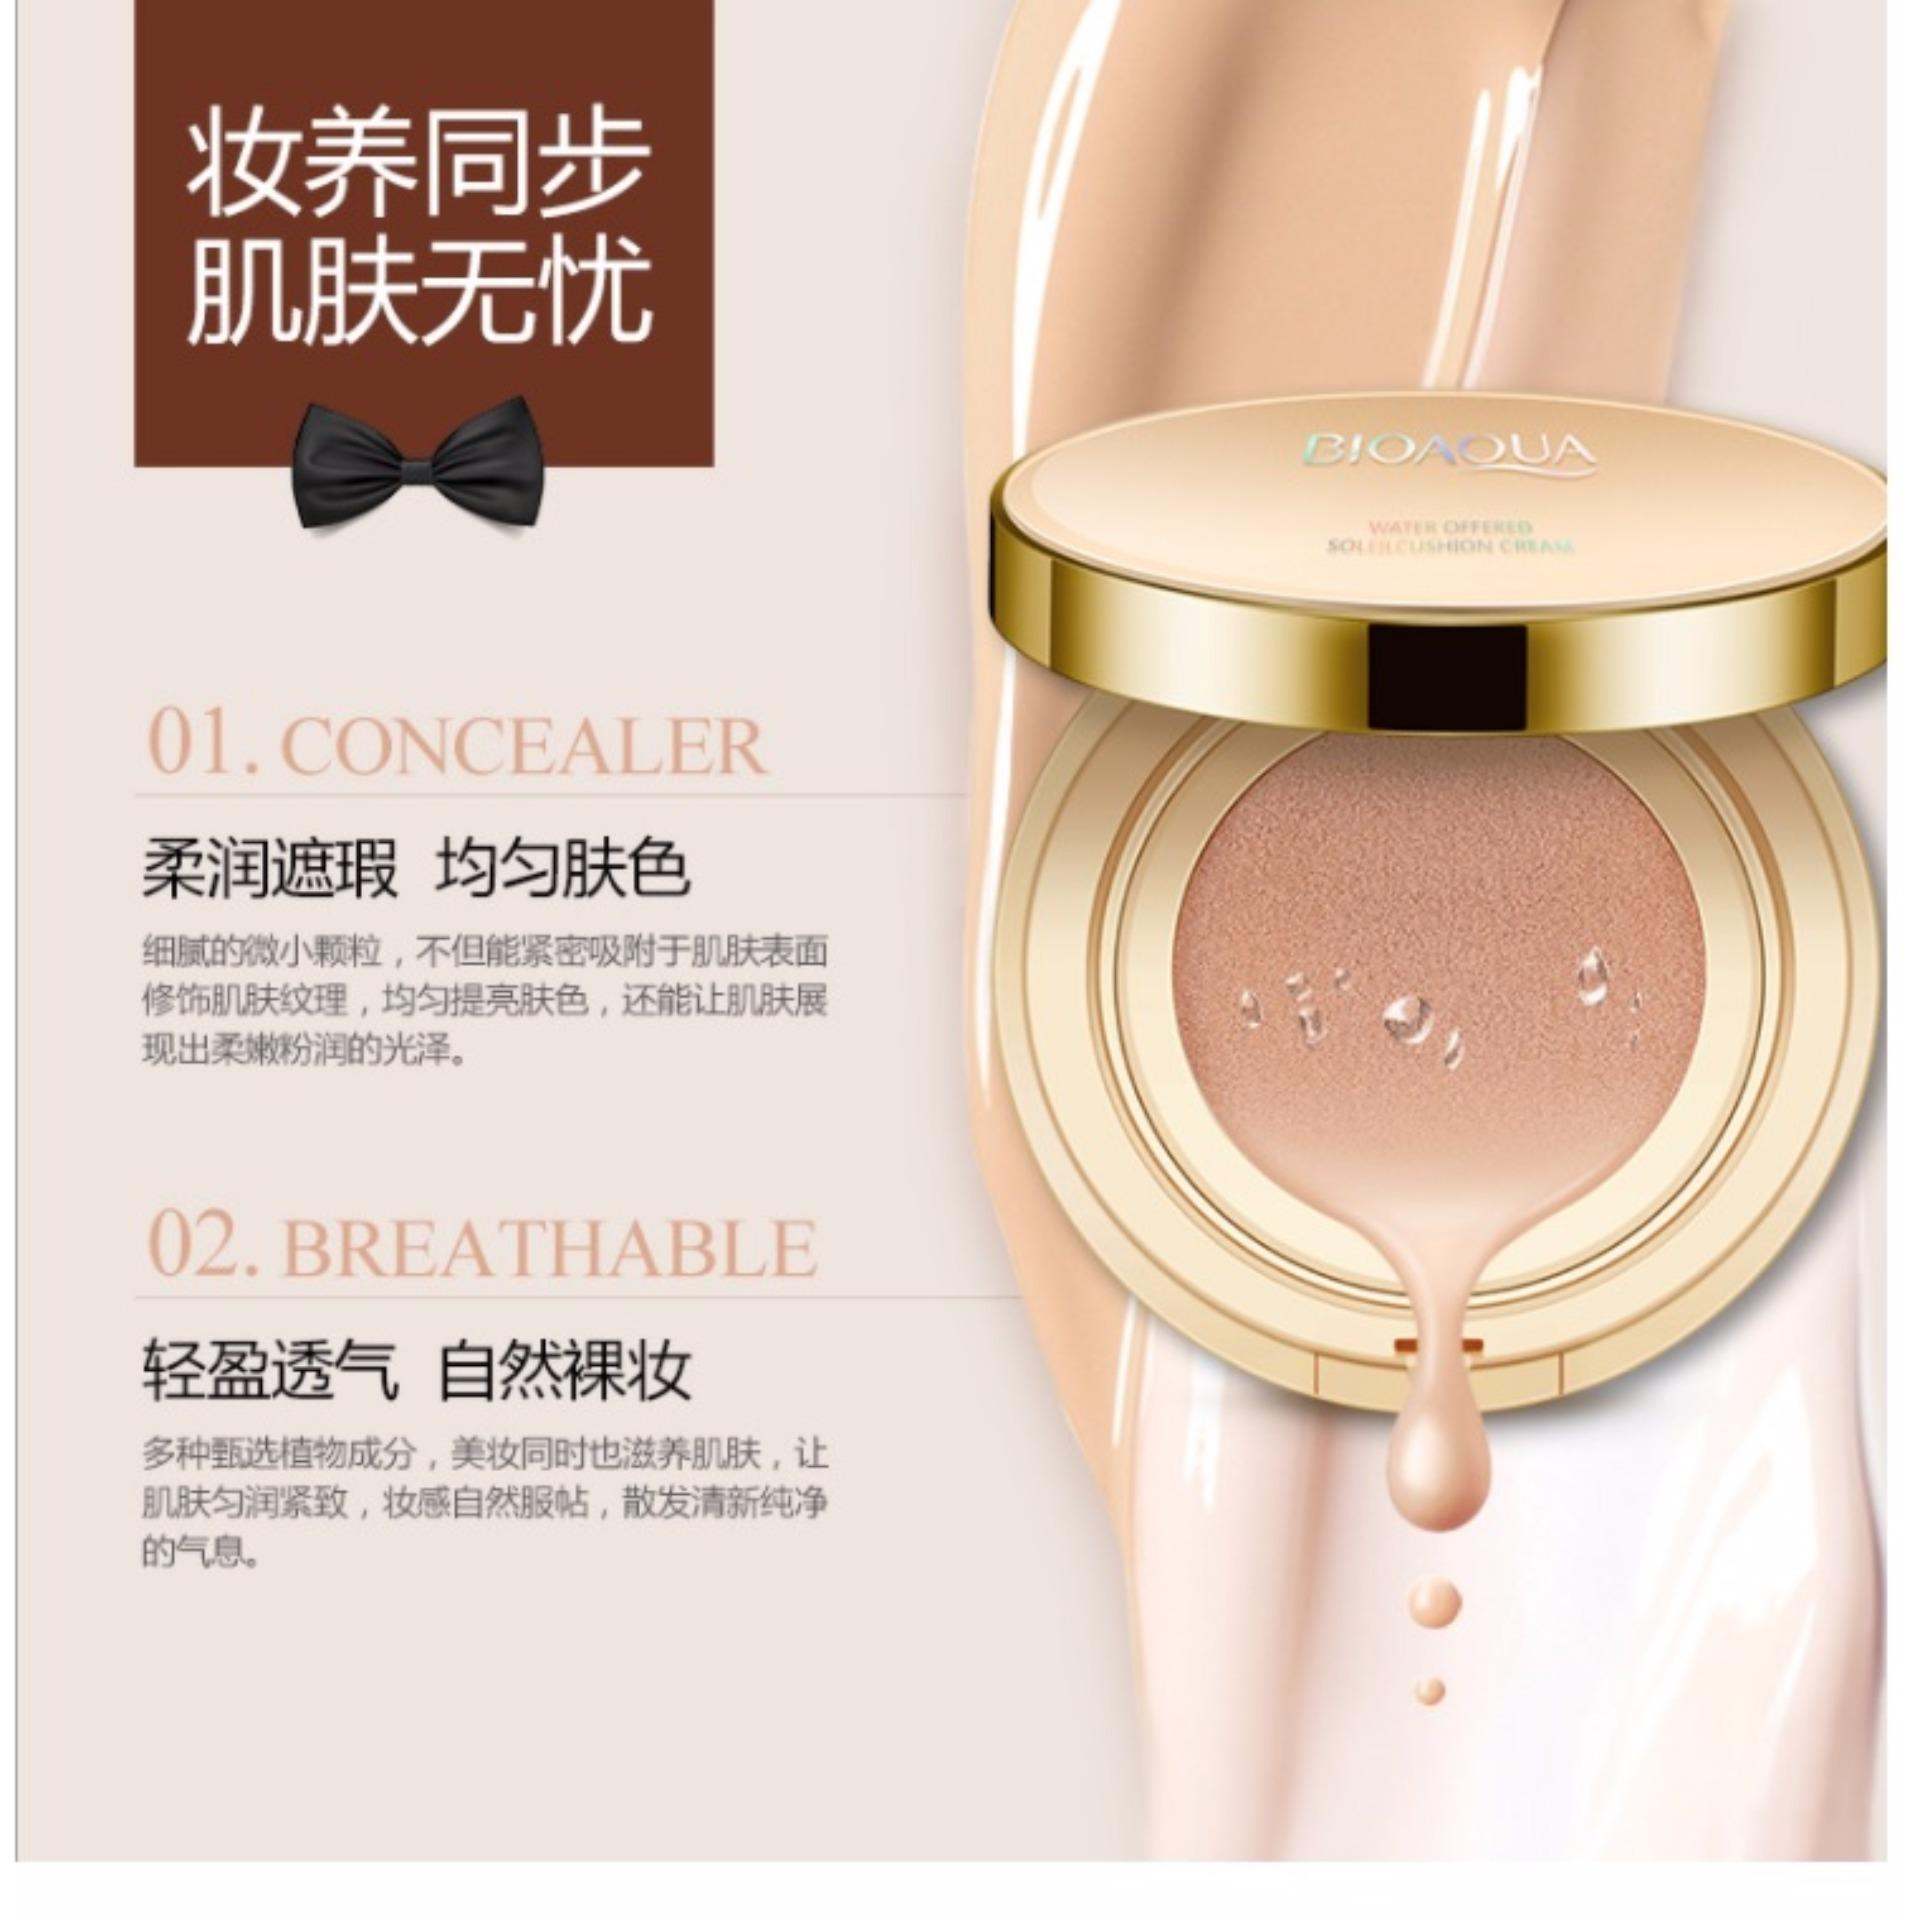 Philippines Bioaqua Bqy4228 02 Hydraulically Clear And Flawless Bb Smoot Muscle Blush On Cream 15g Ivory